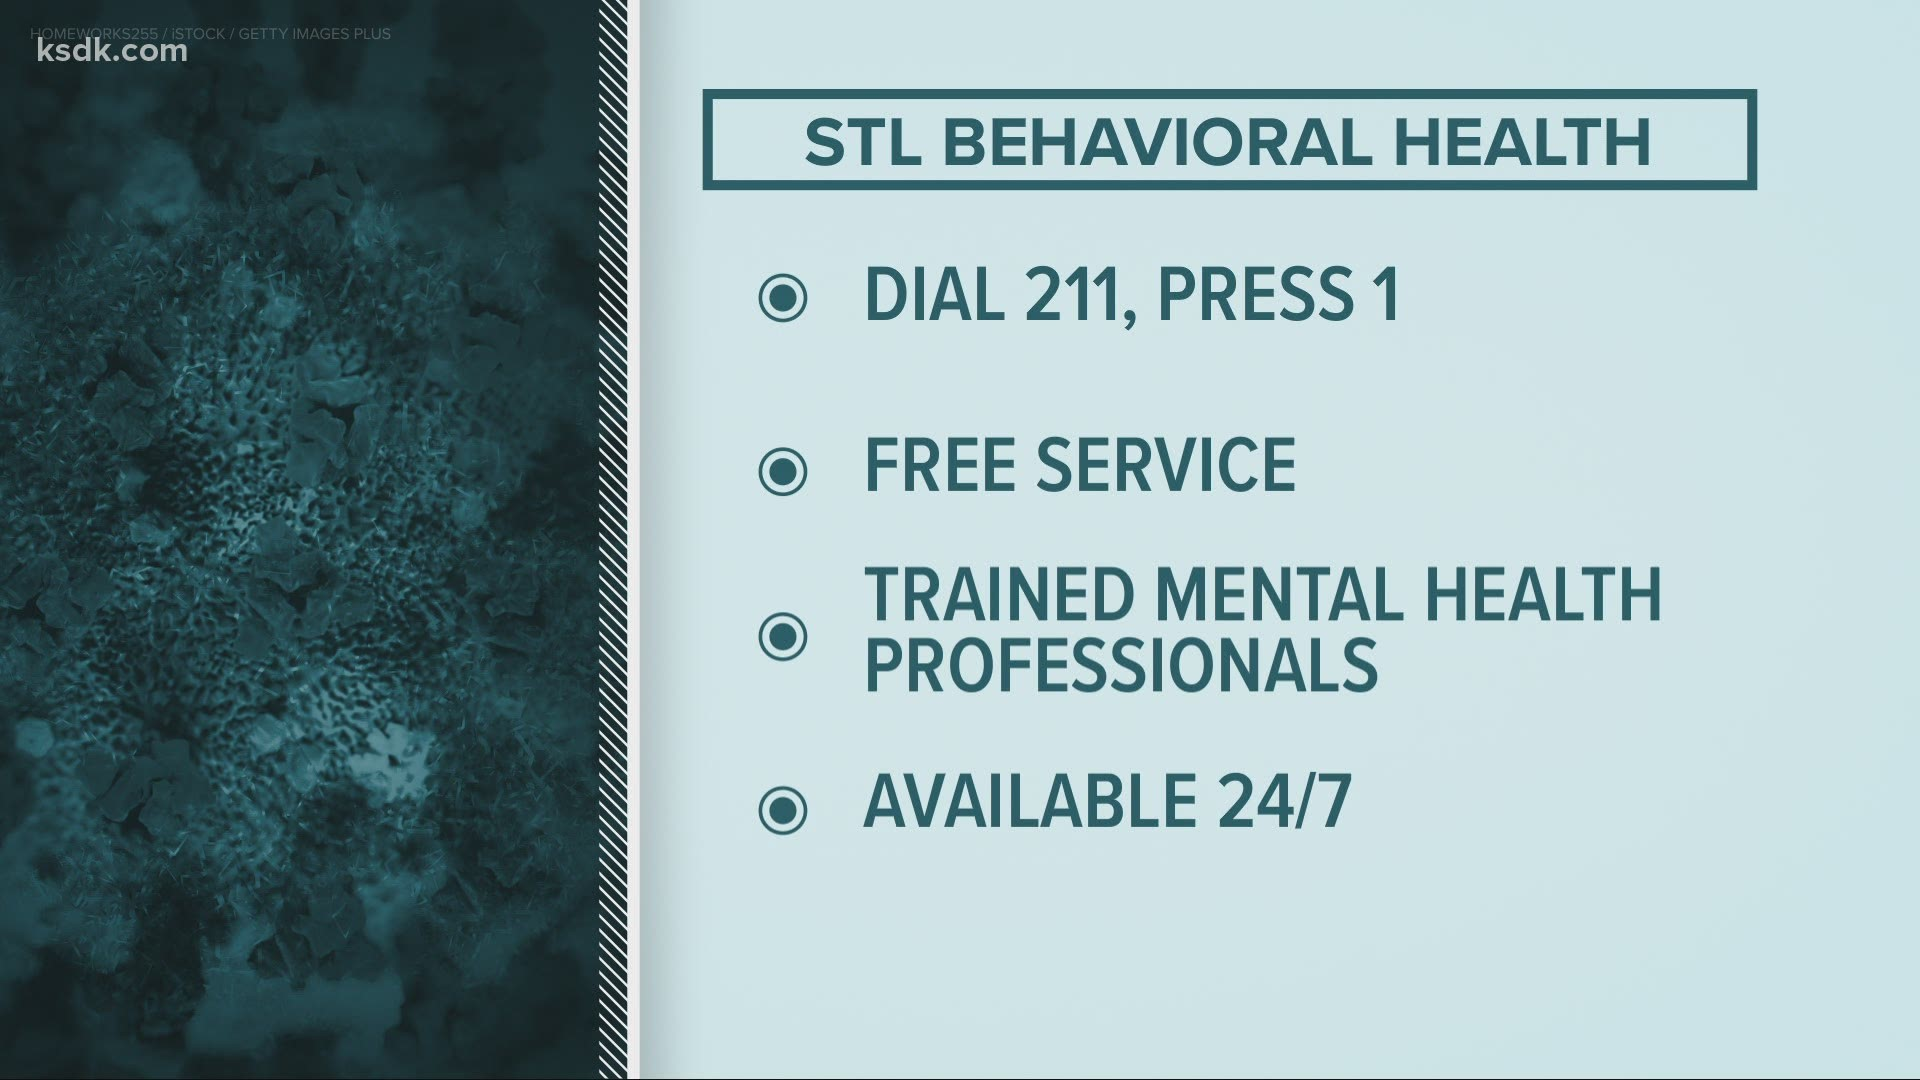 St Louis Free Mental Health Services Ksdk Com